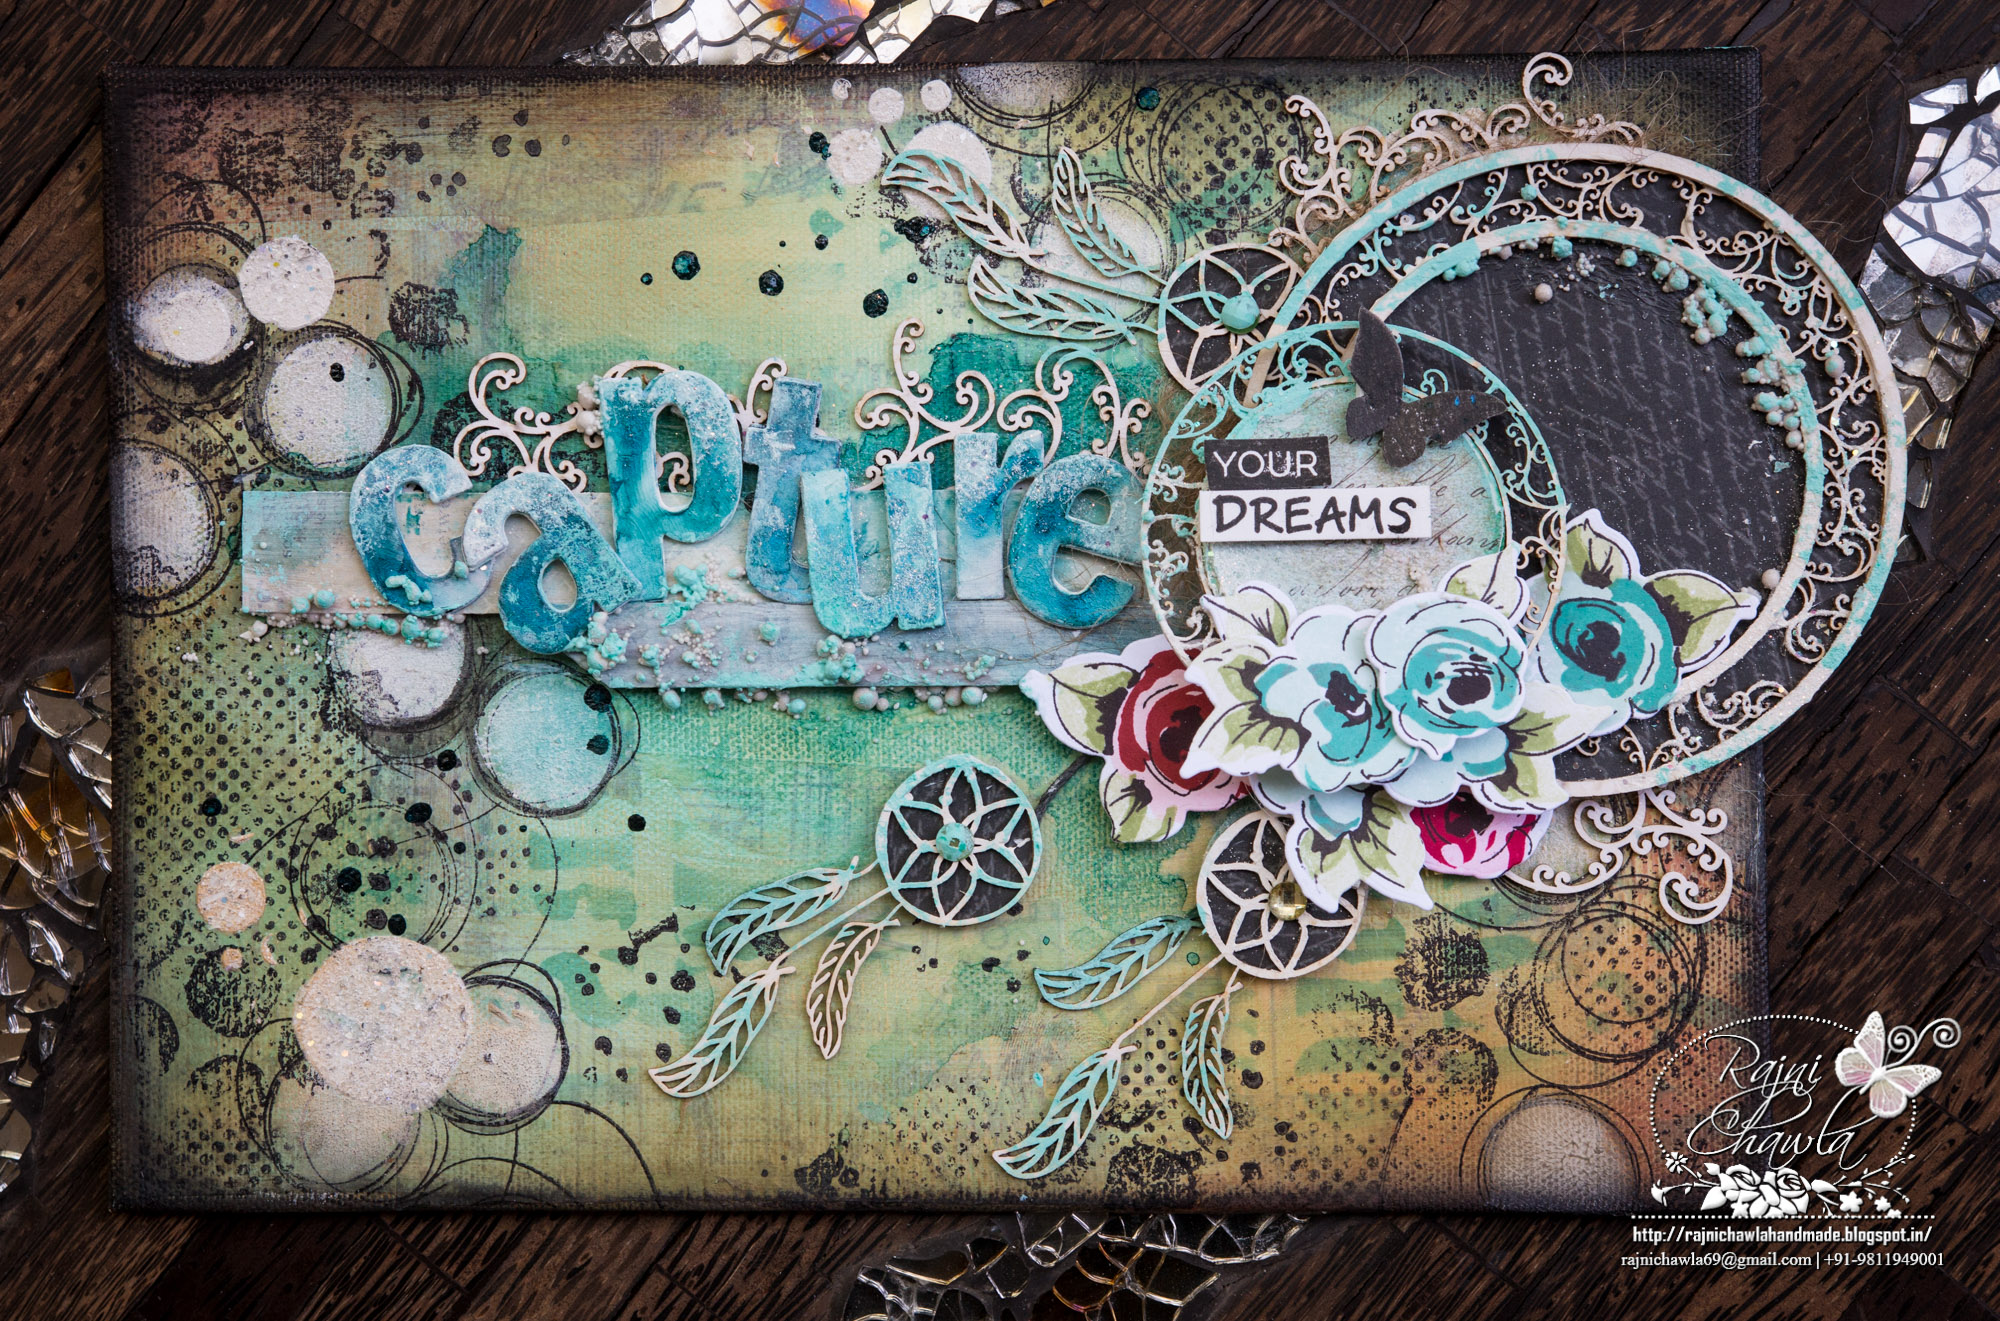 Capture Your Dreams_Scrapineic_ (1 of 12)